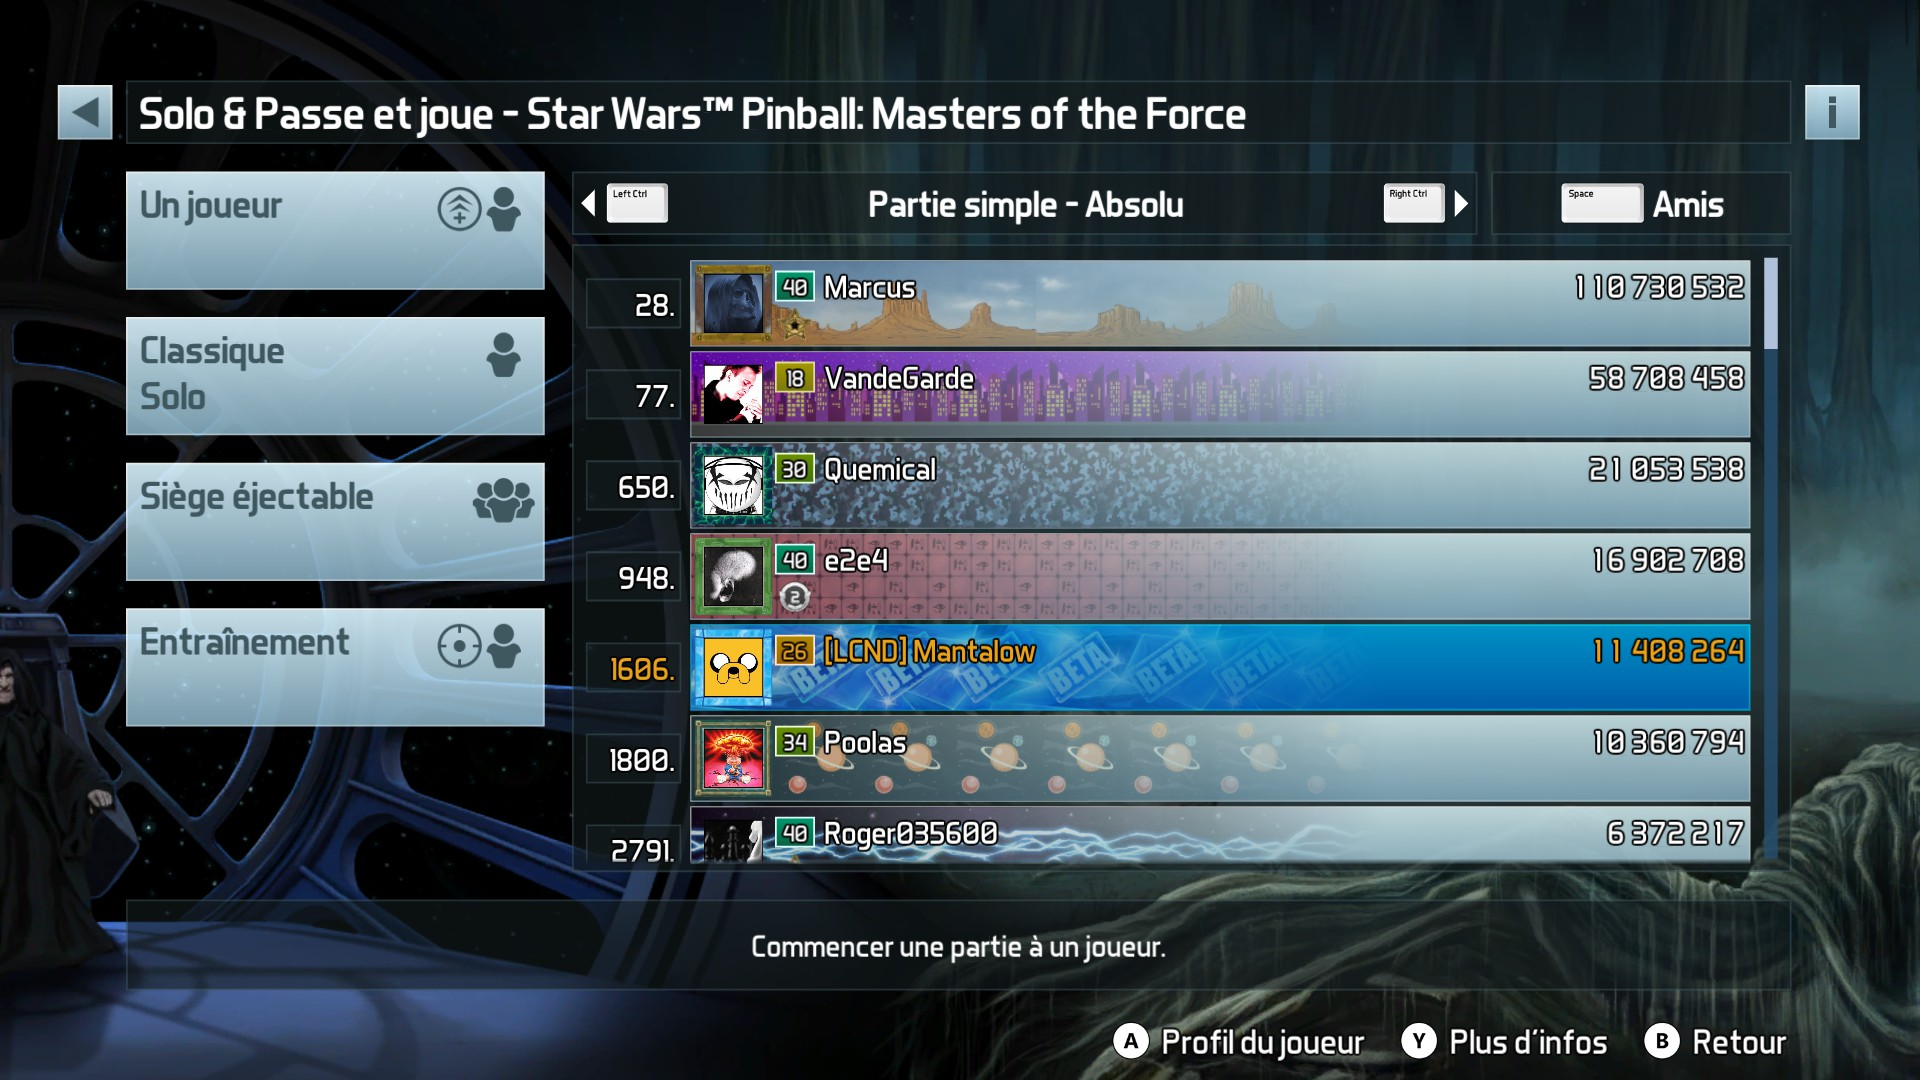 Mantalow: Pinball FX3: Star Wars Pinball: Masters of the Force (PC) 11,408,264 points on 2017-12-19 04:41:12